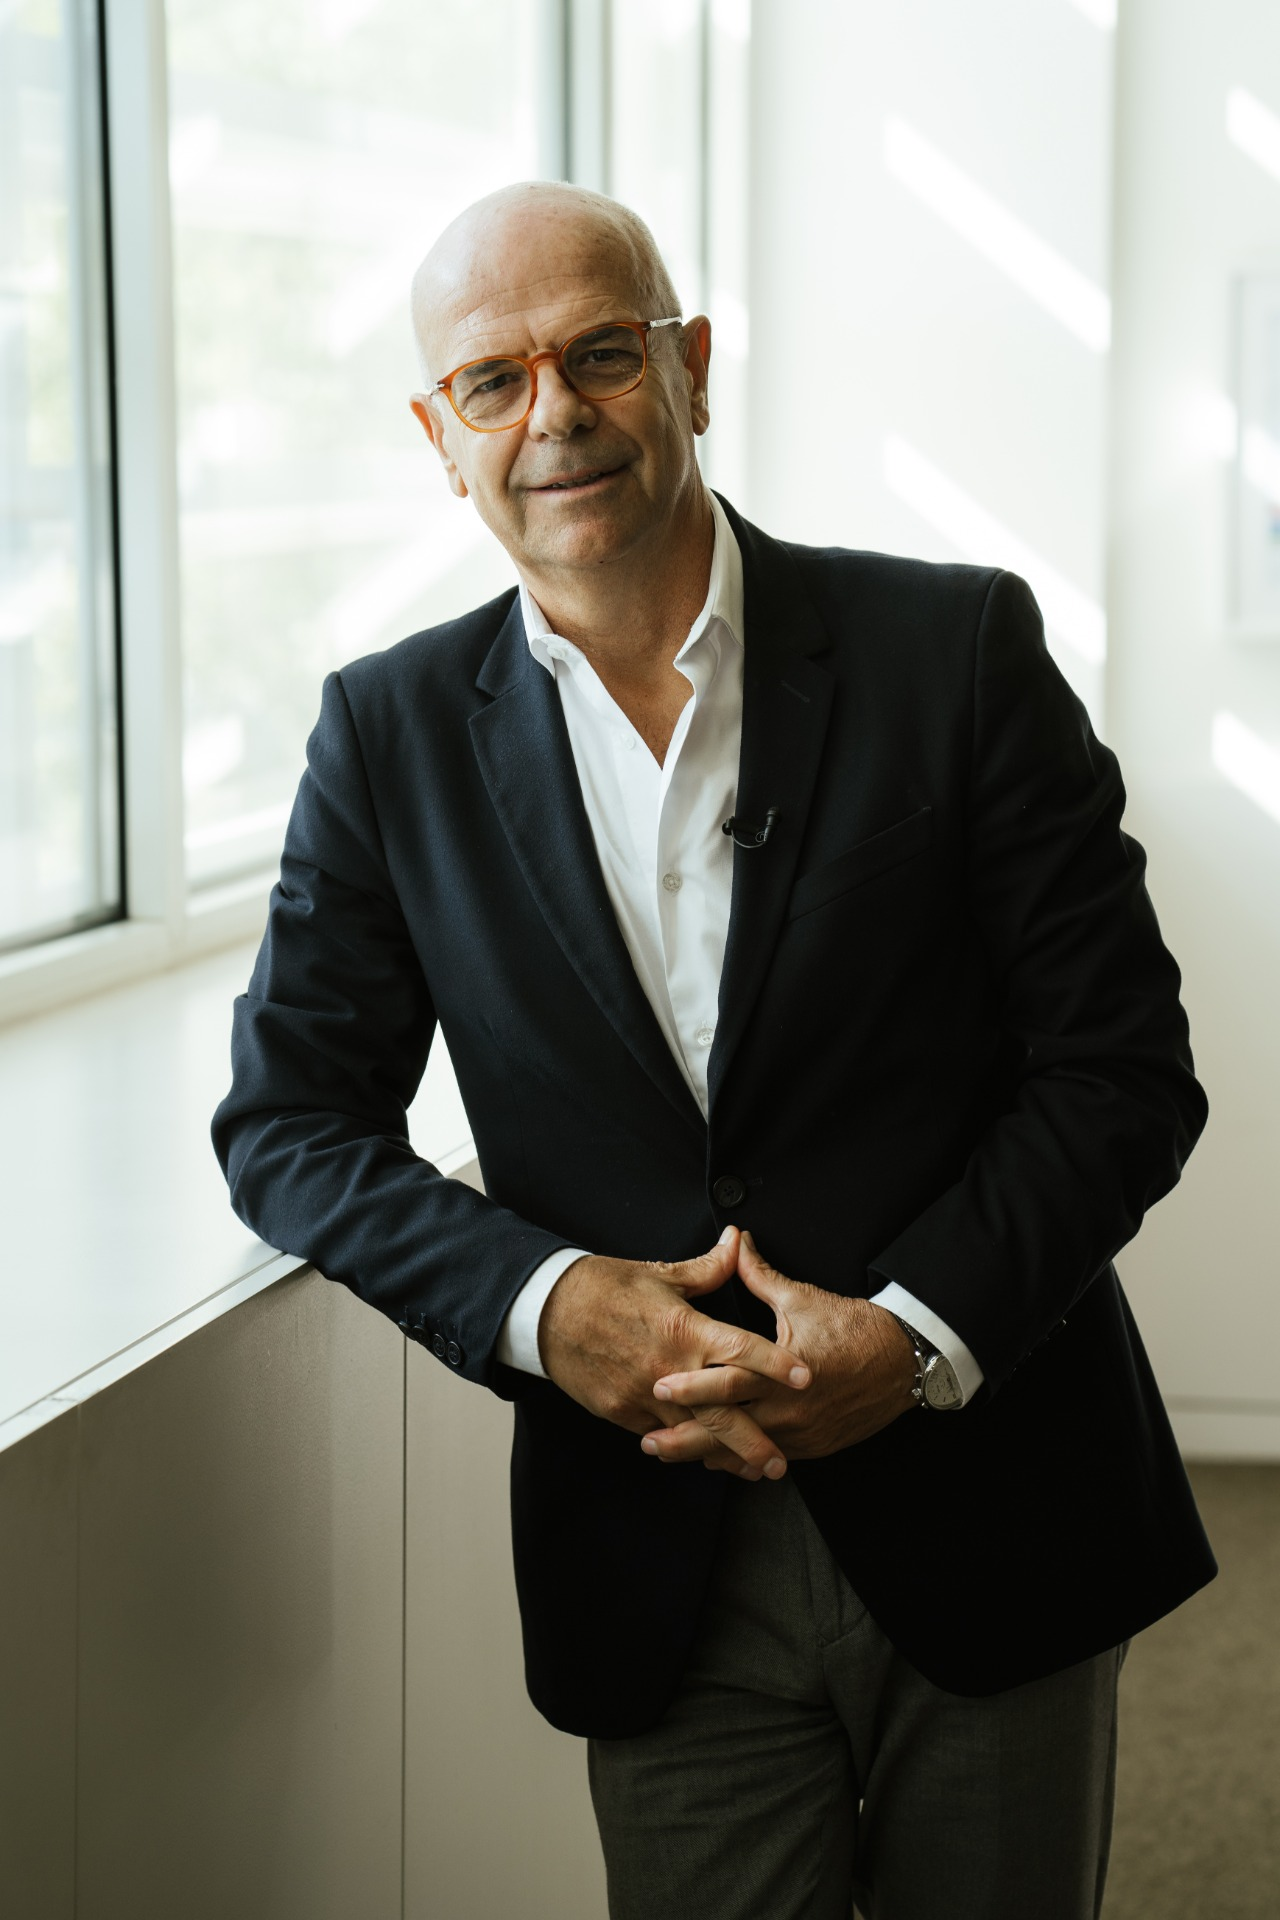 José Soares - Author, Professor at UP and specialist in Performance - Connecting Stories PARTTEAM & OEMKIOSKS